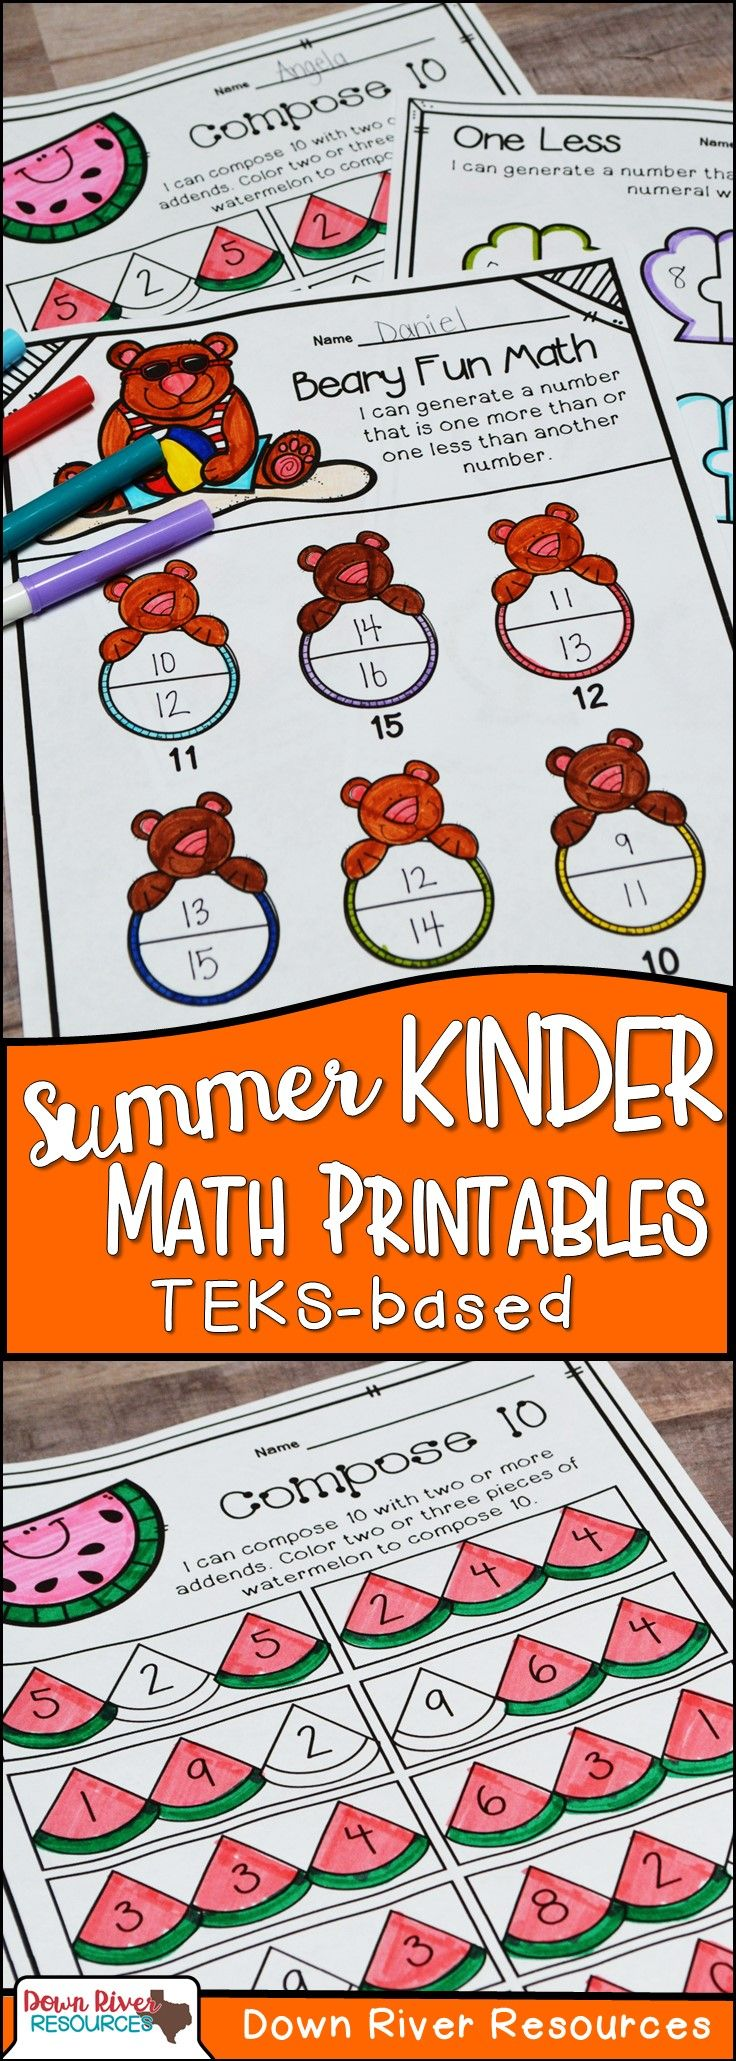 c264b7f892504c02133c4d3cdbb509bb Teks Math Worksheets For Kindergarten on writing numbers, spring addition, common core, end year,